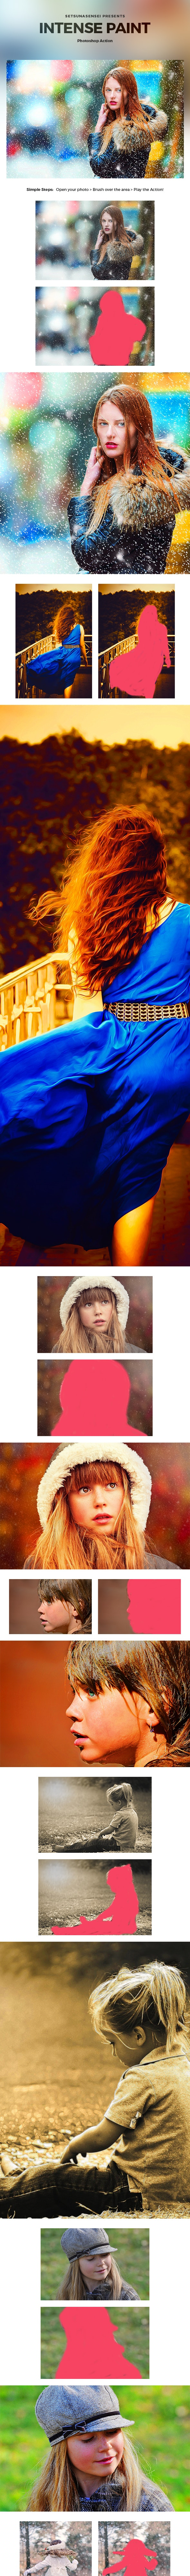 Intense Paint Photoshop Action - Photo Effects Actions